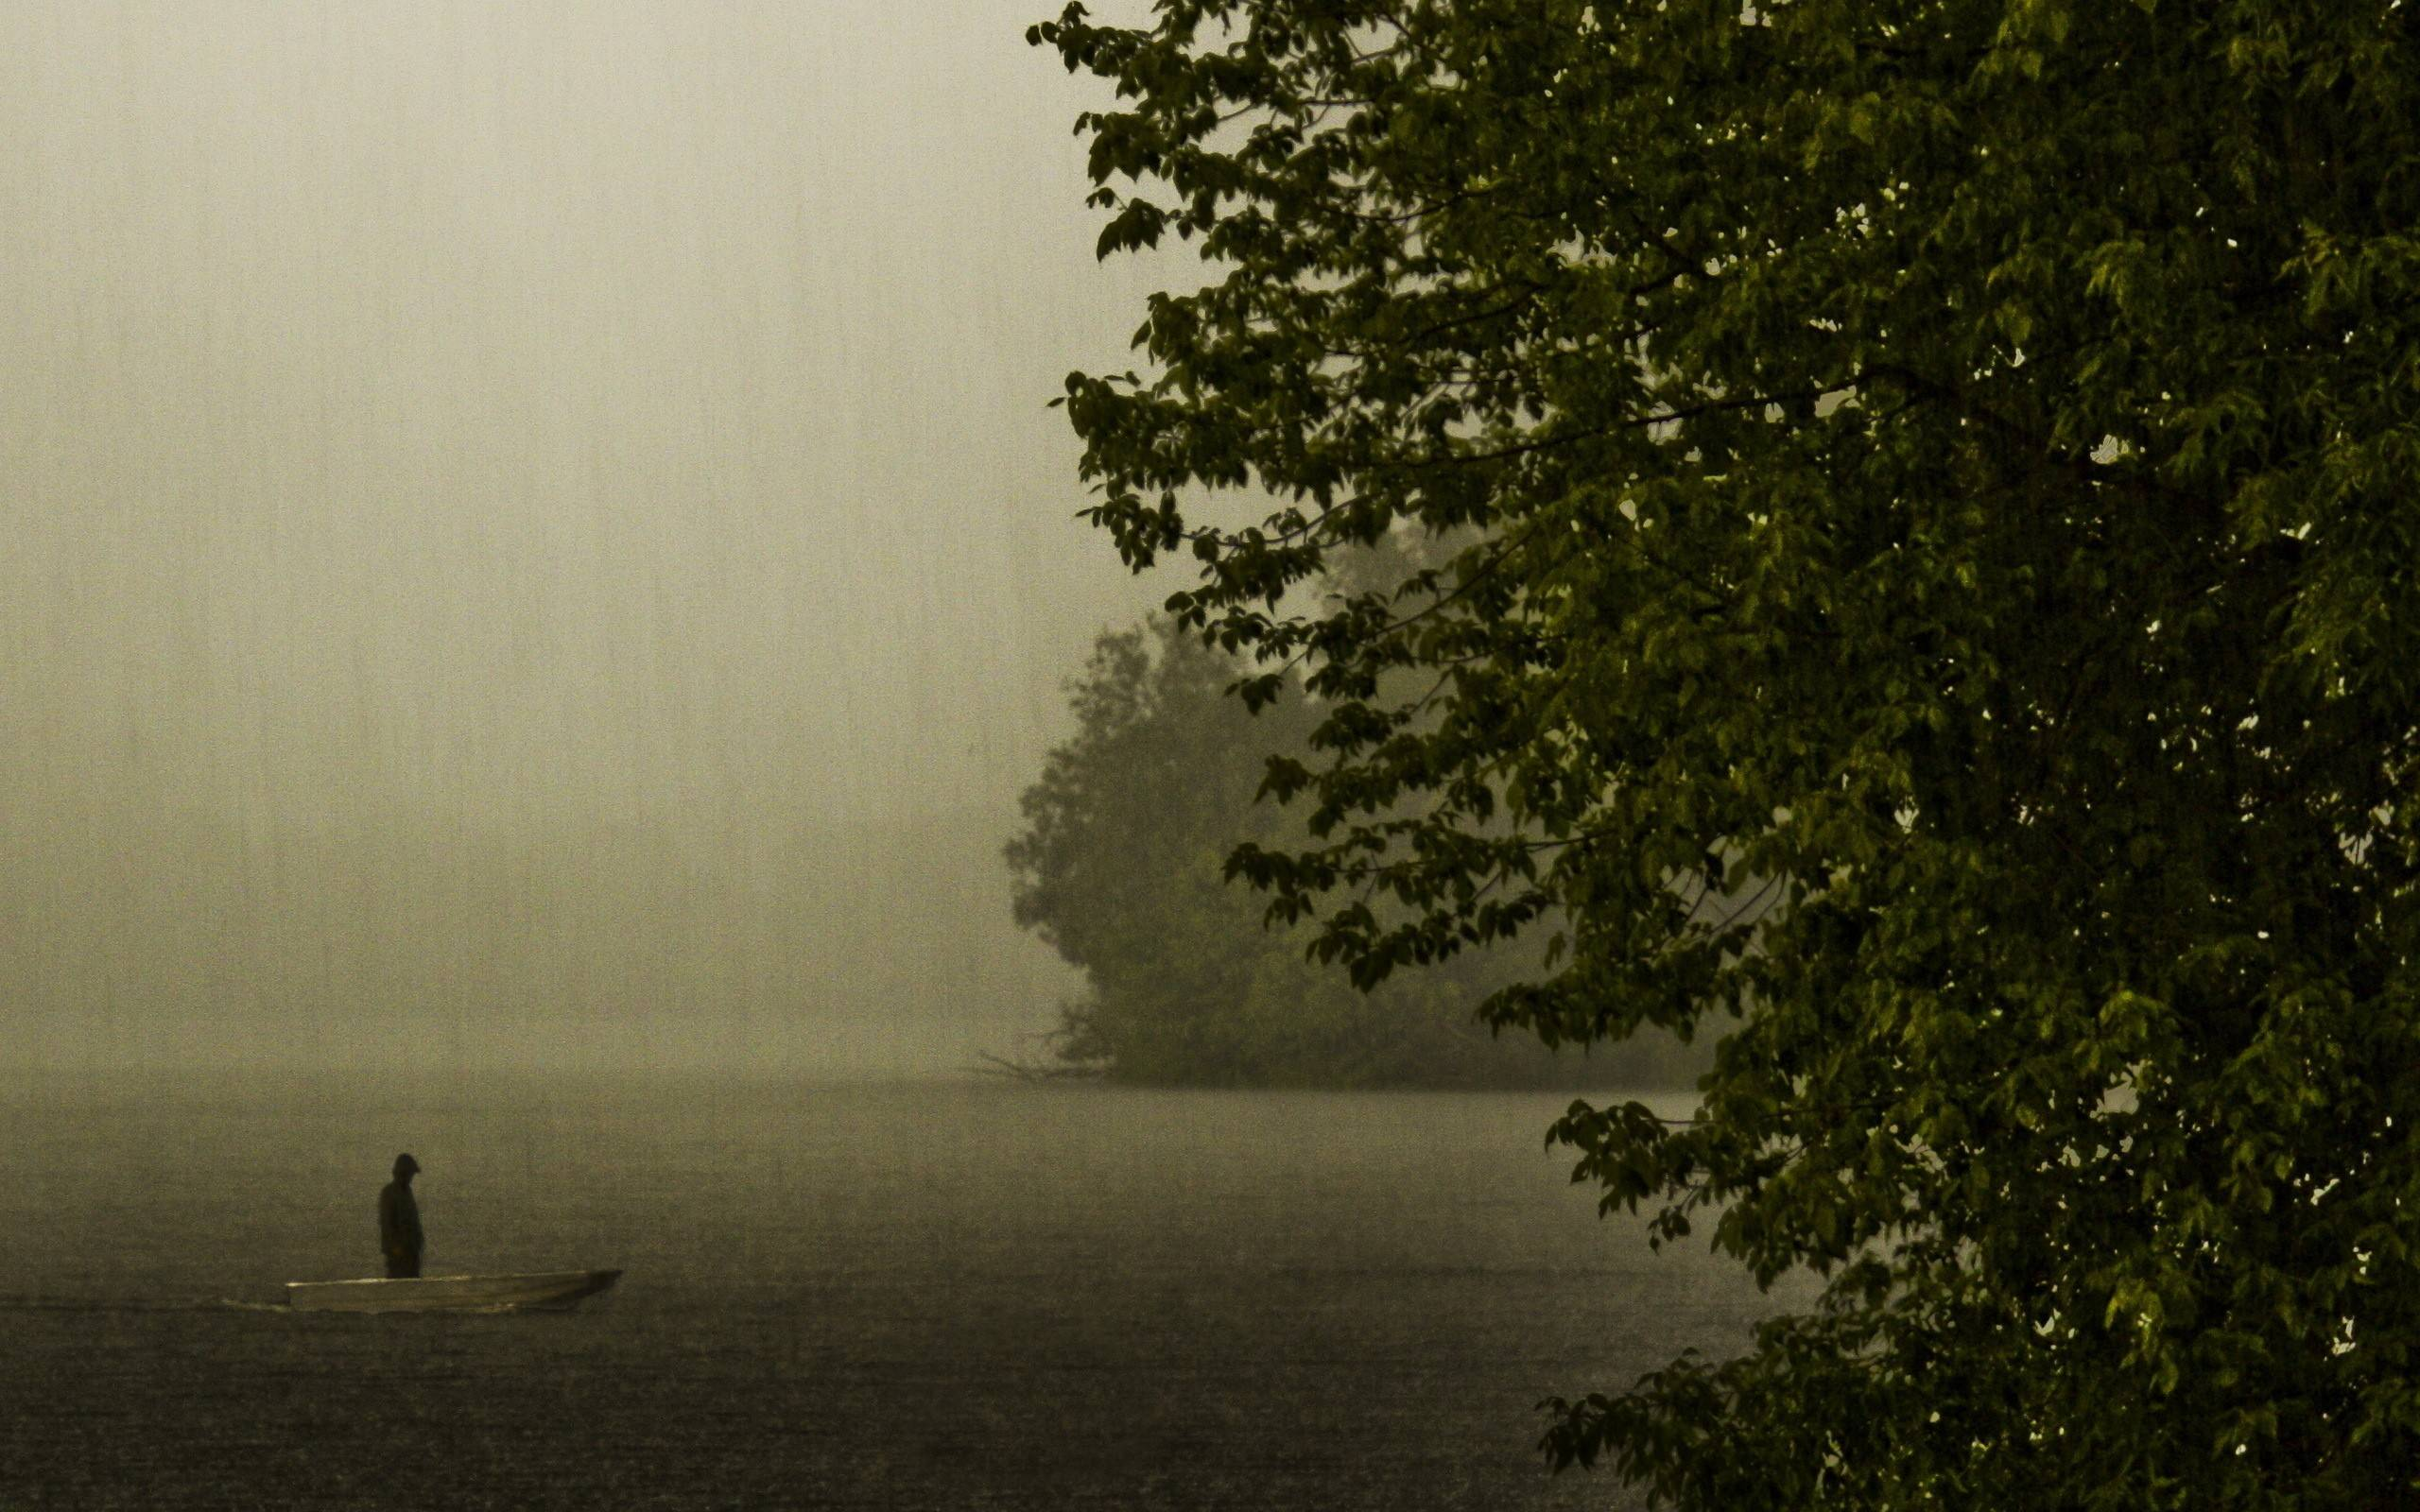 Rainy Day Wallpapers - Wallpaper Cave